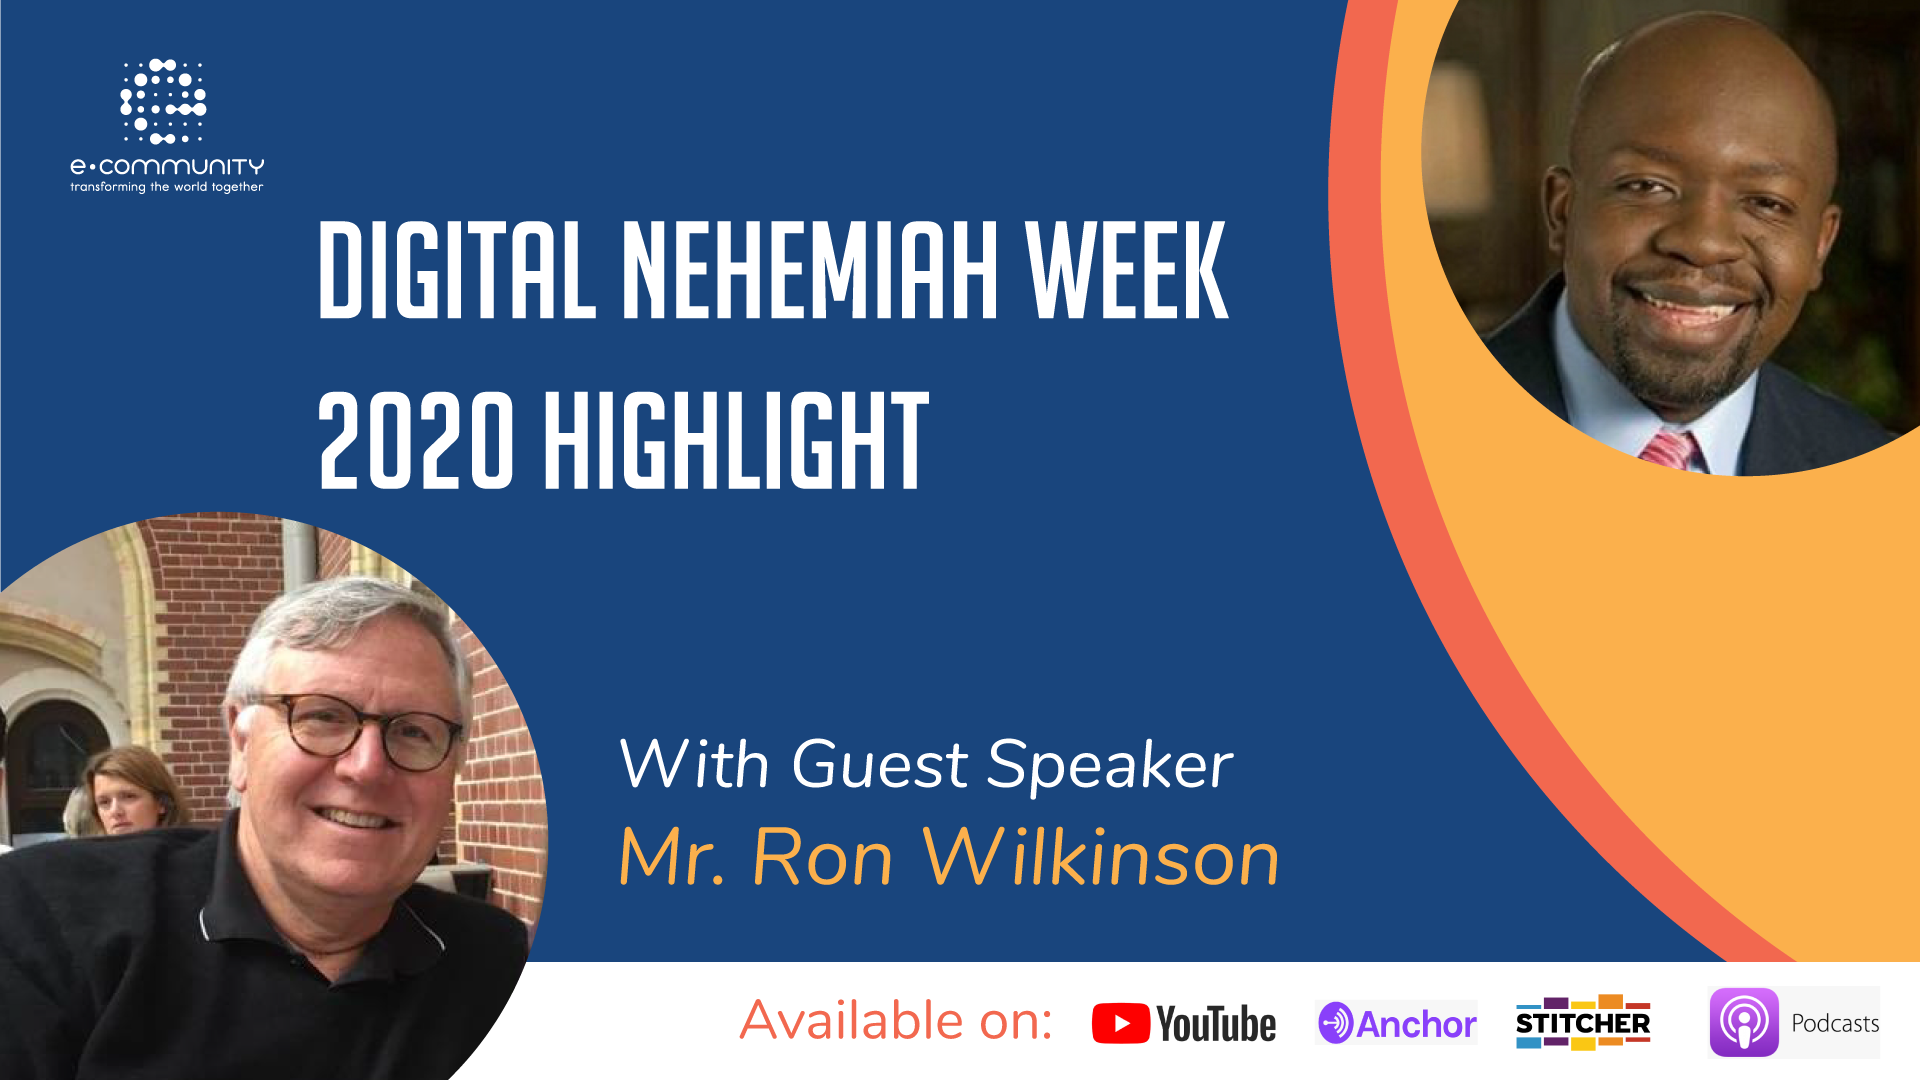 Digital Nehemiah Week 2020 Highlights Host Patrice Tsague with Mr. Ron Wilkinson